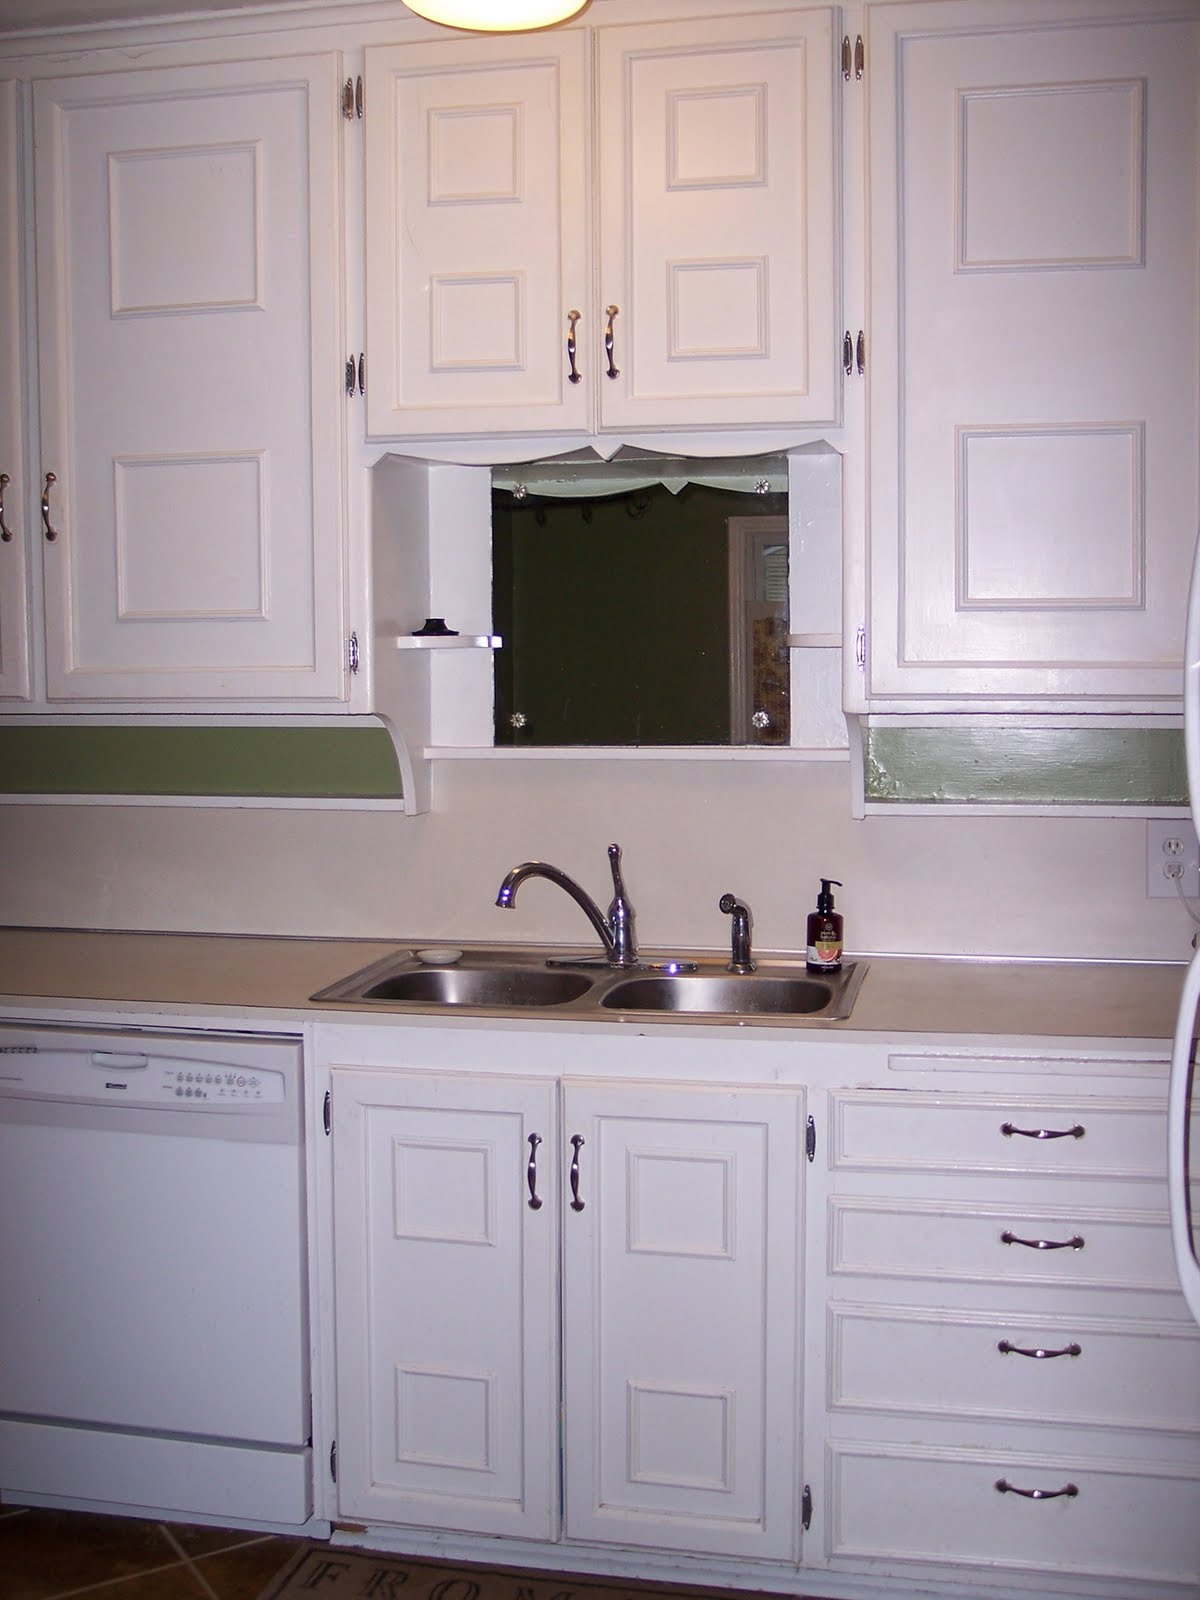 Ways To Refinish Kitchen Cabinets WikiHow. Full resolution‎  img, nominally Width 1200 Height 1600 pixels, img with #825A49.